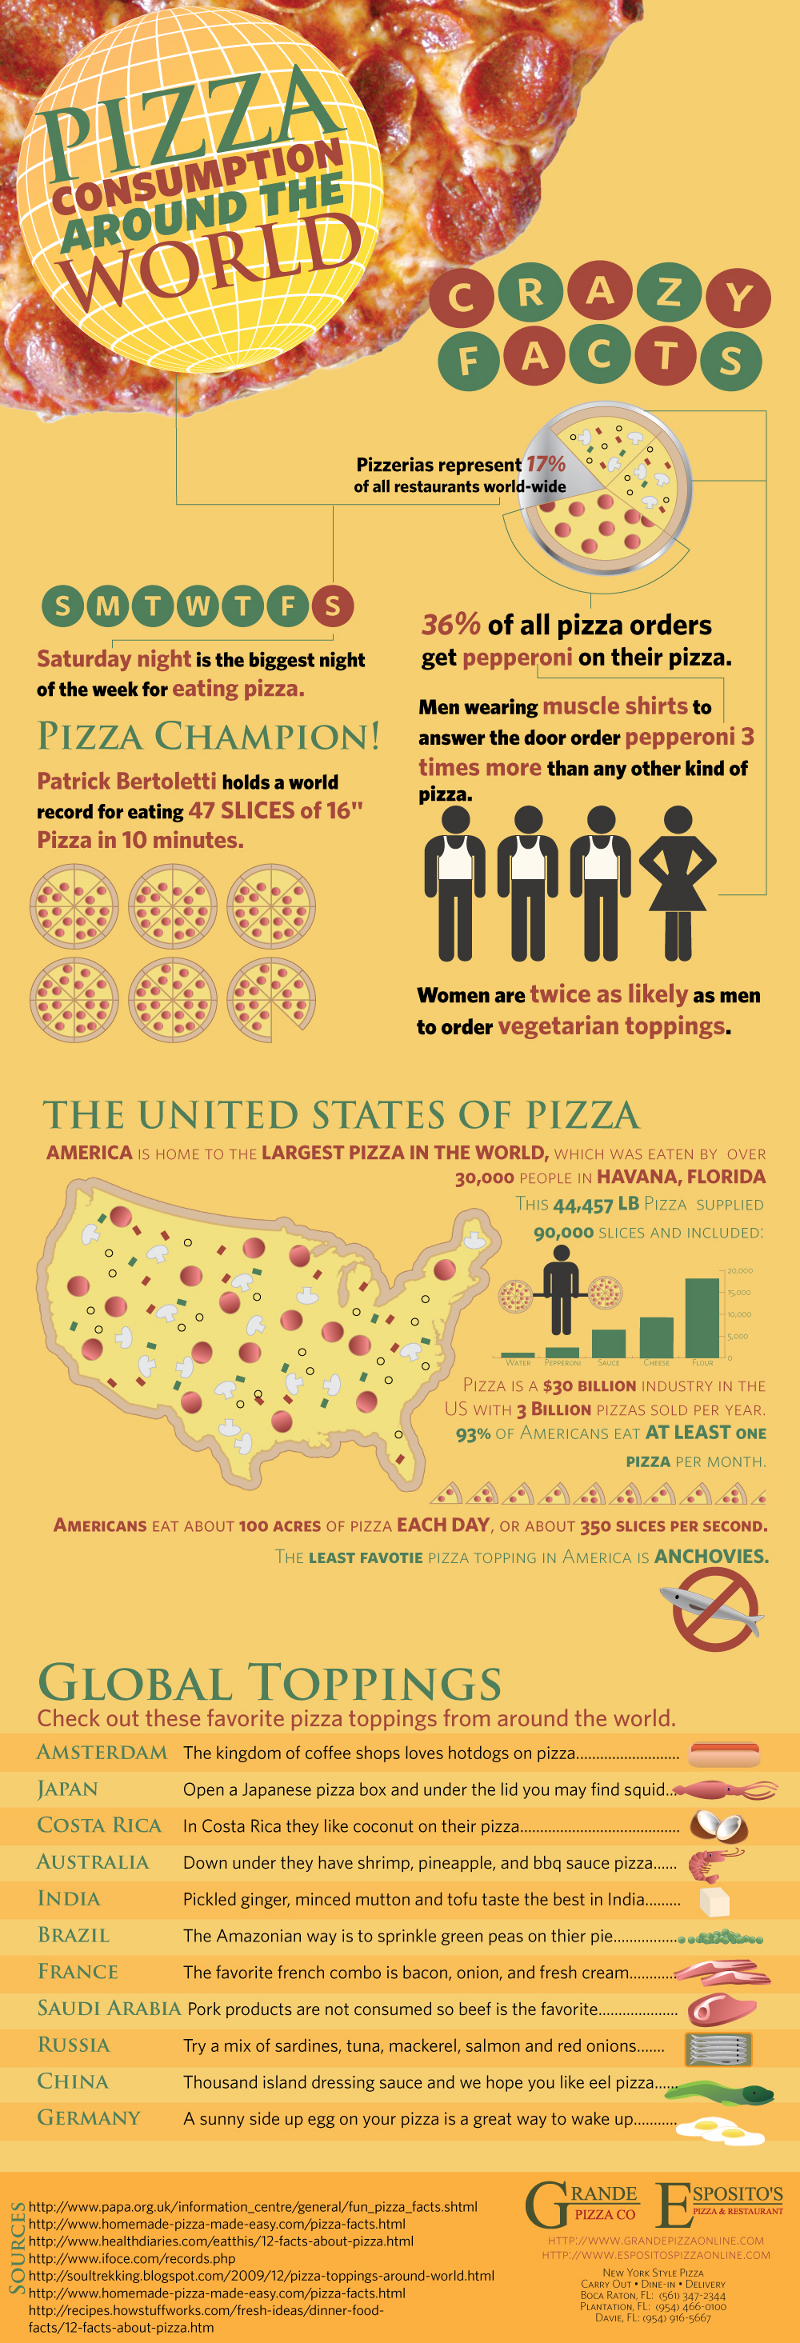 World Pizza Consumption Statistics 32 Catchy Pizza Slogans and Good Taglines